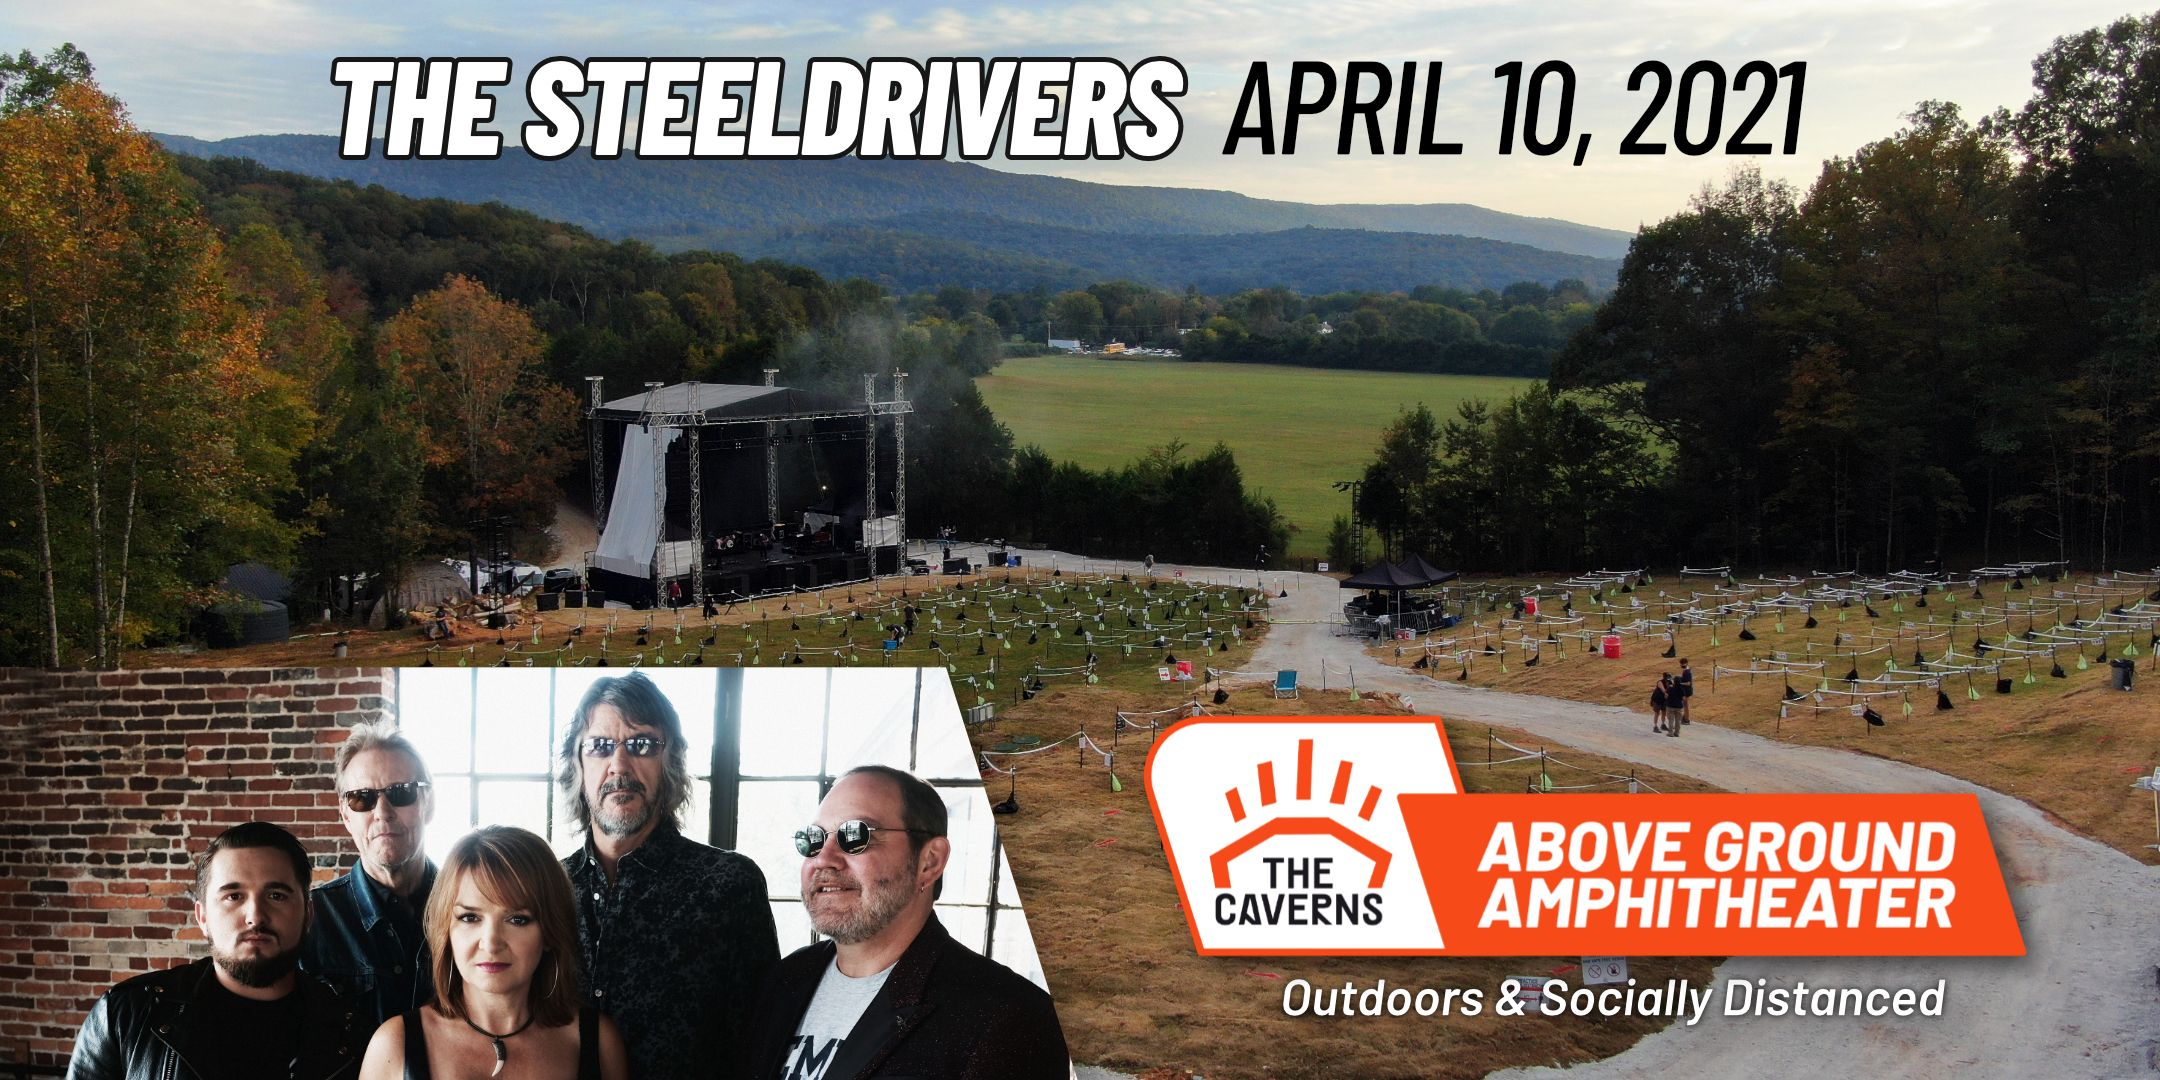 CVRNS SteelDrivers 2160x1080v2.jpg